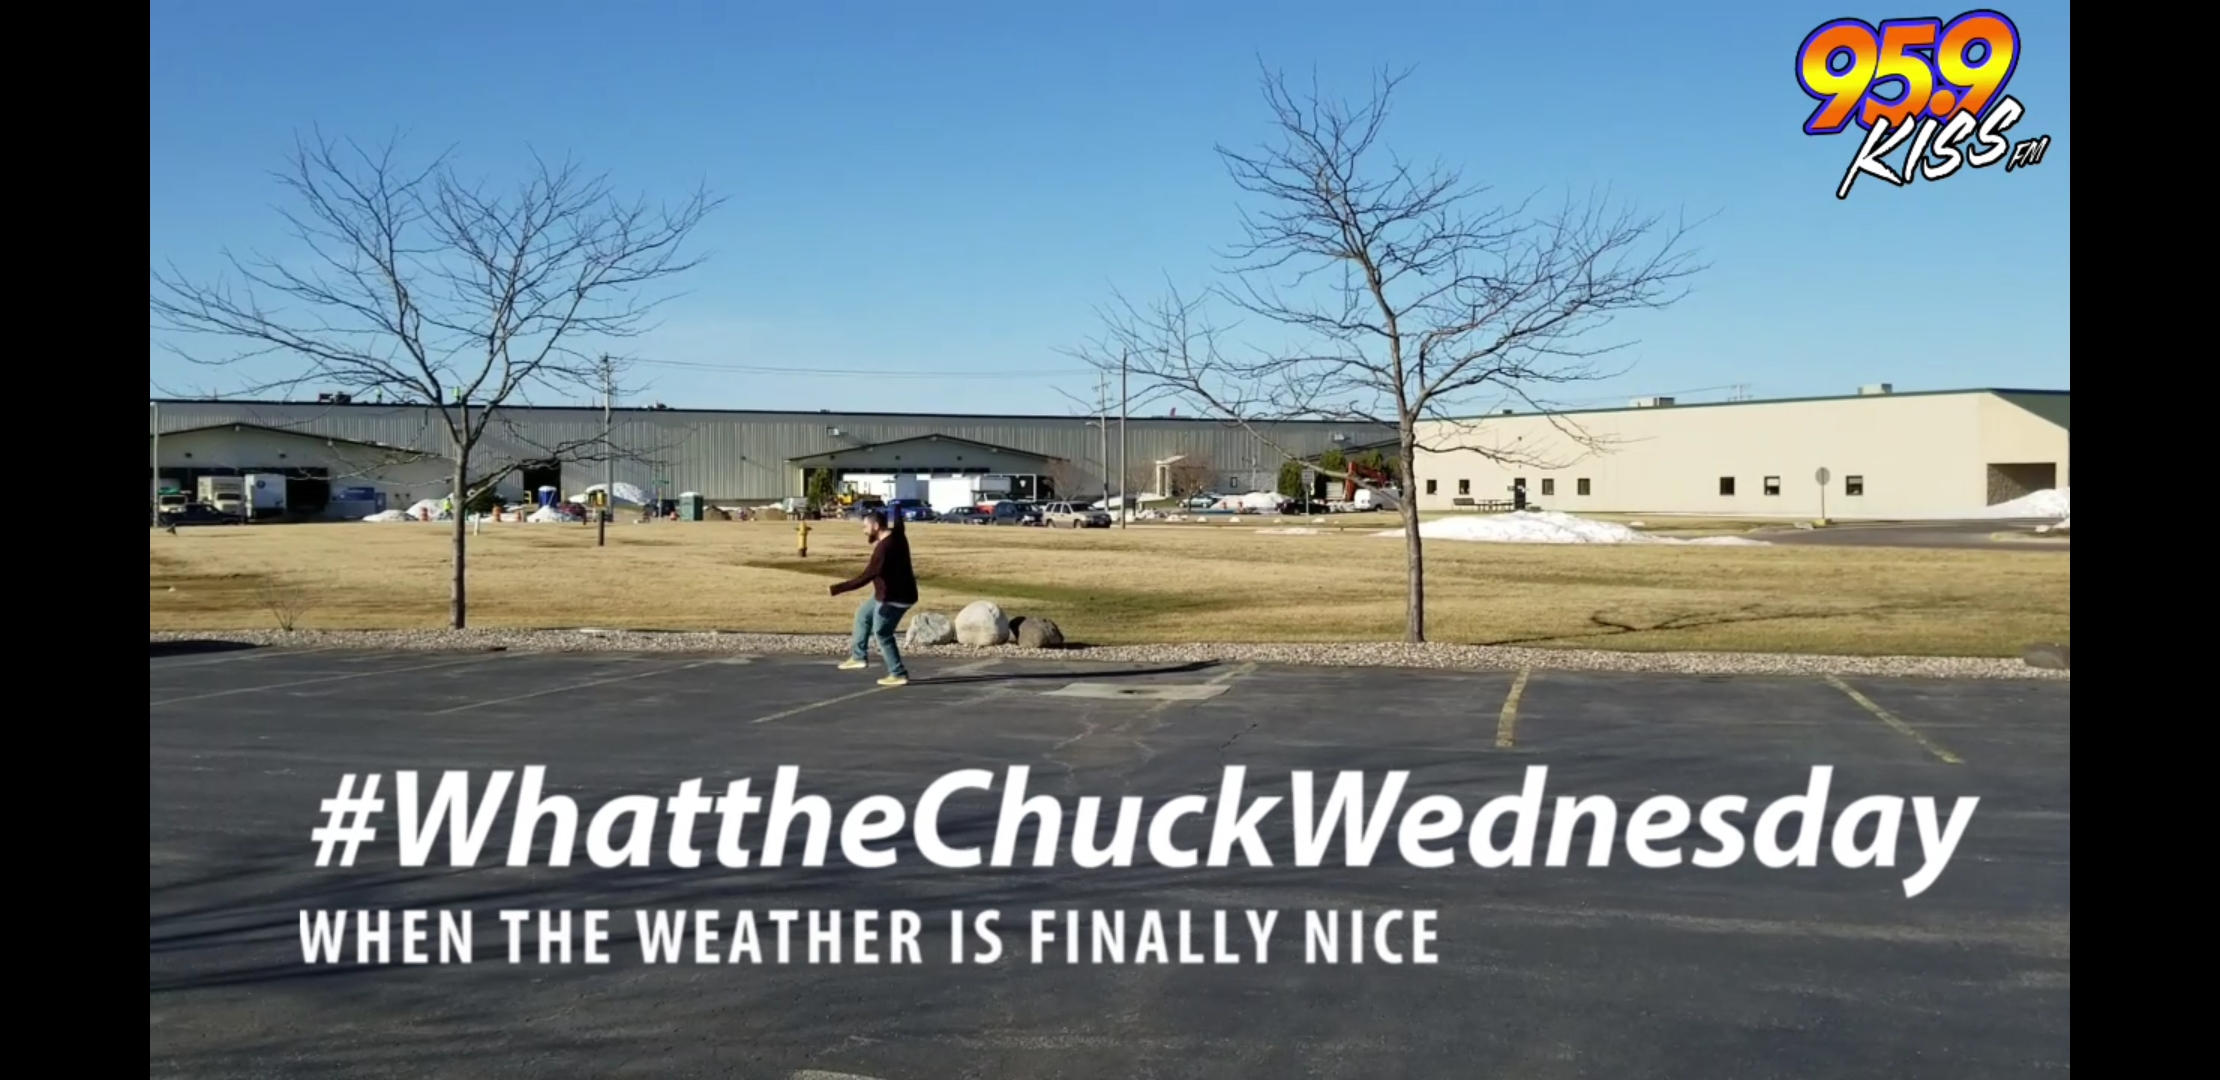 #WhattheChuckWednesday - When The Weather Is Finally Nice